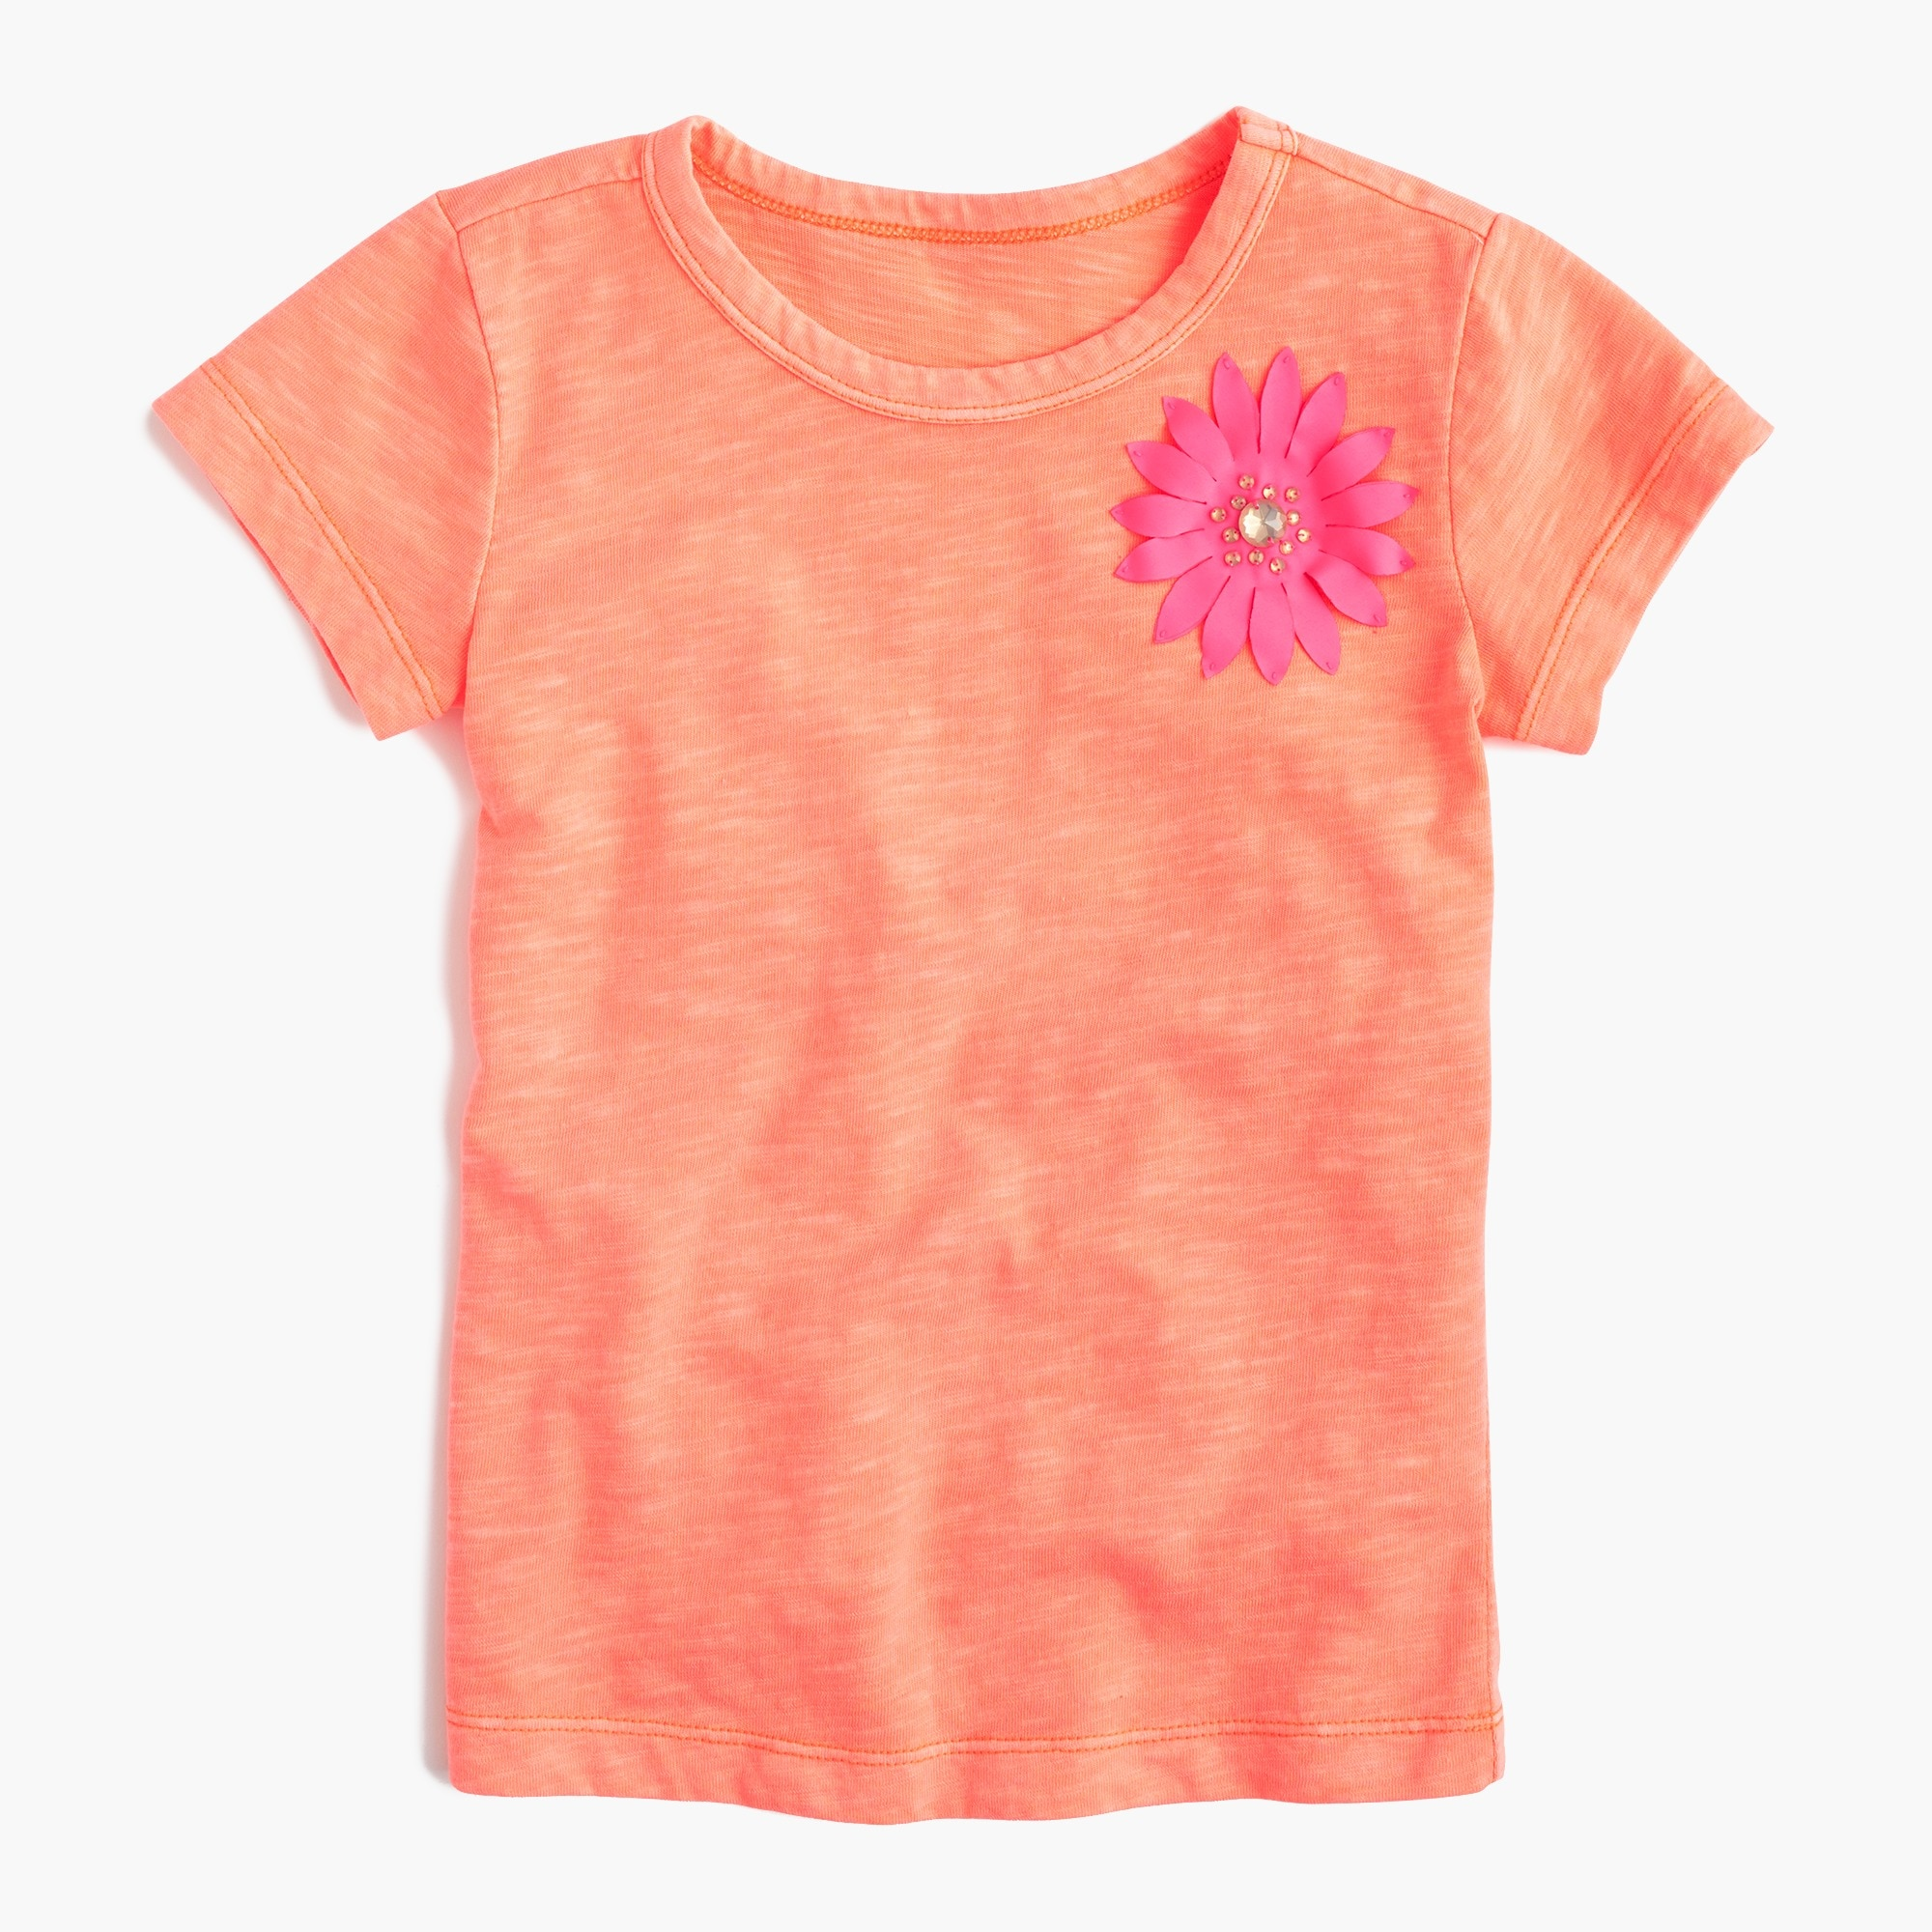 Image 1 for Girls' embellished flower T-shirt